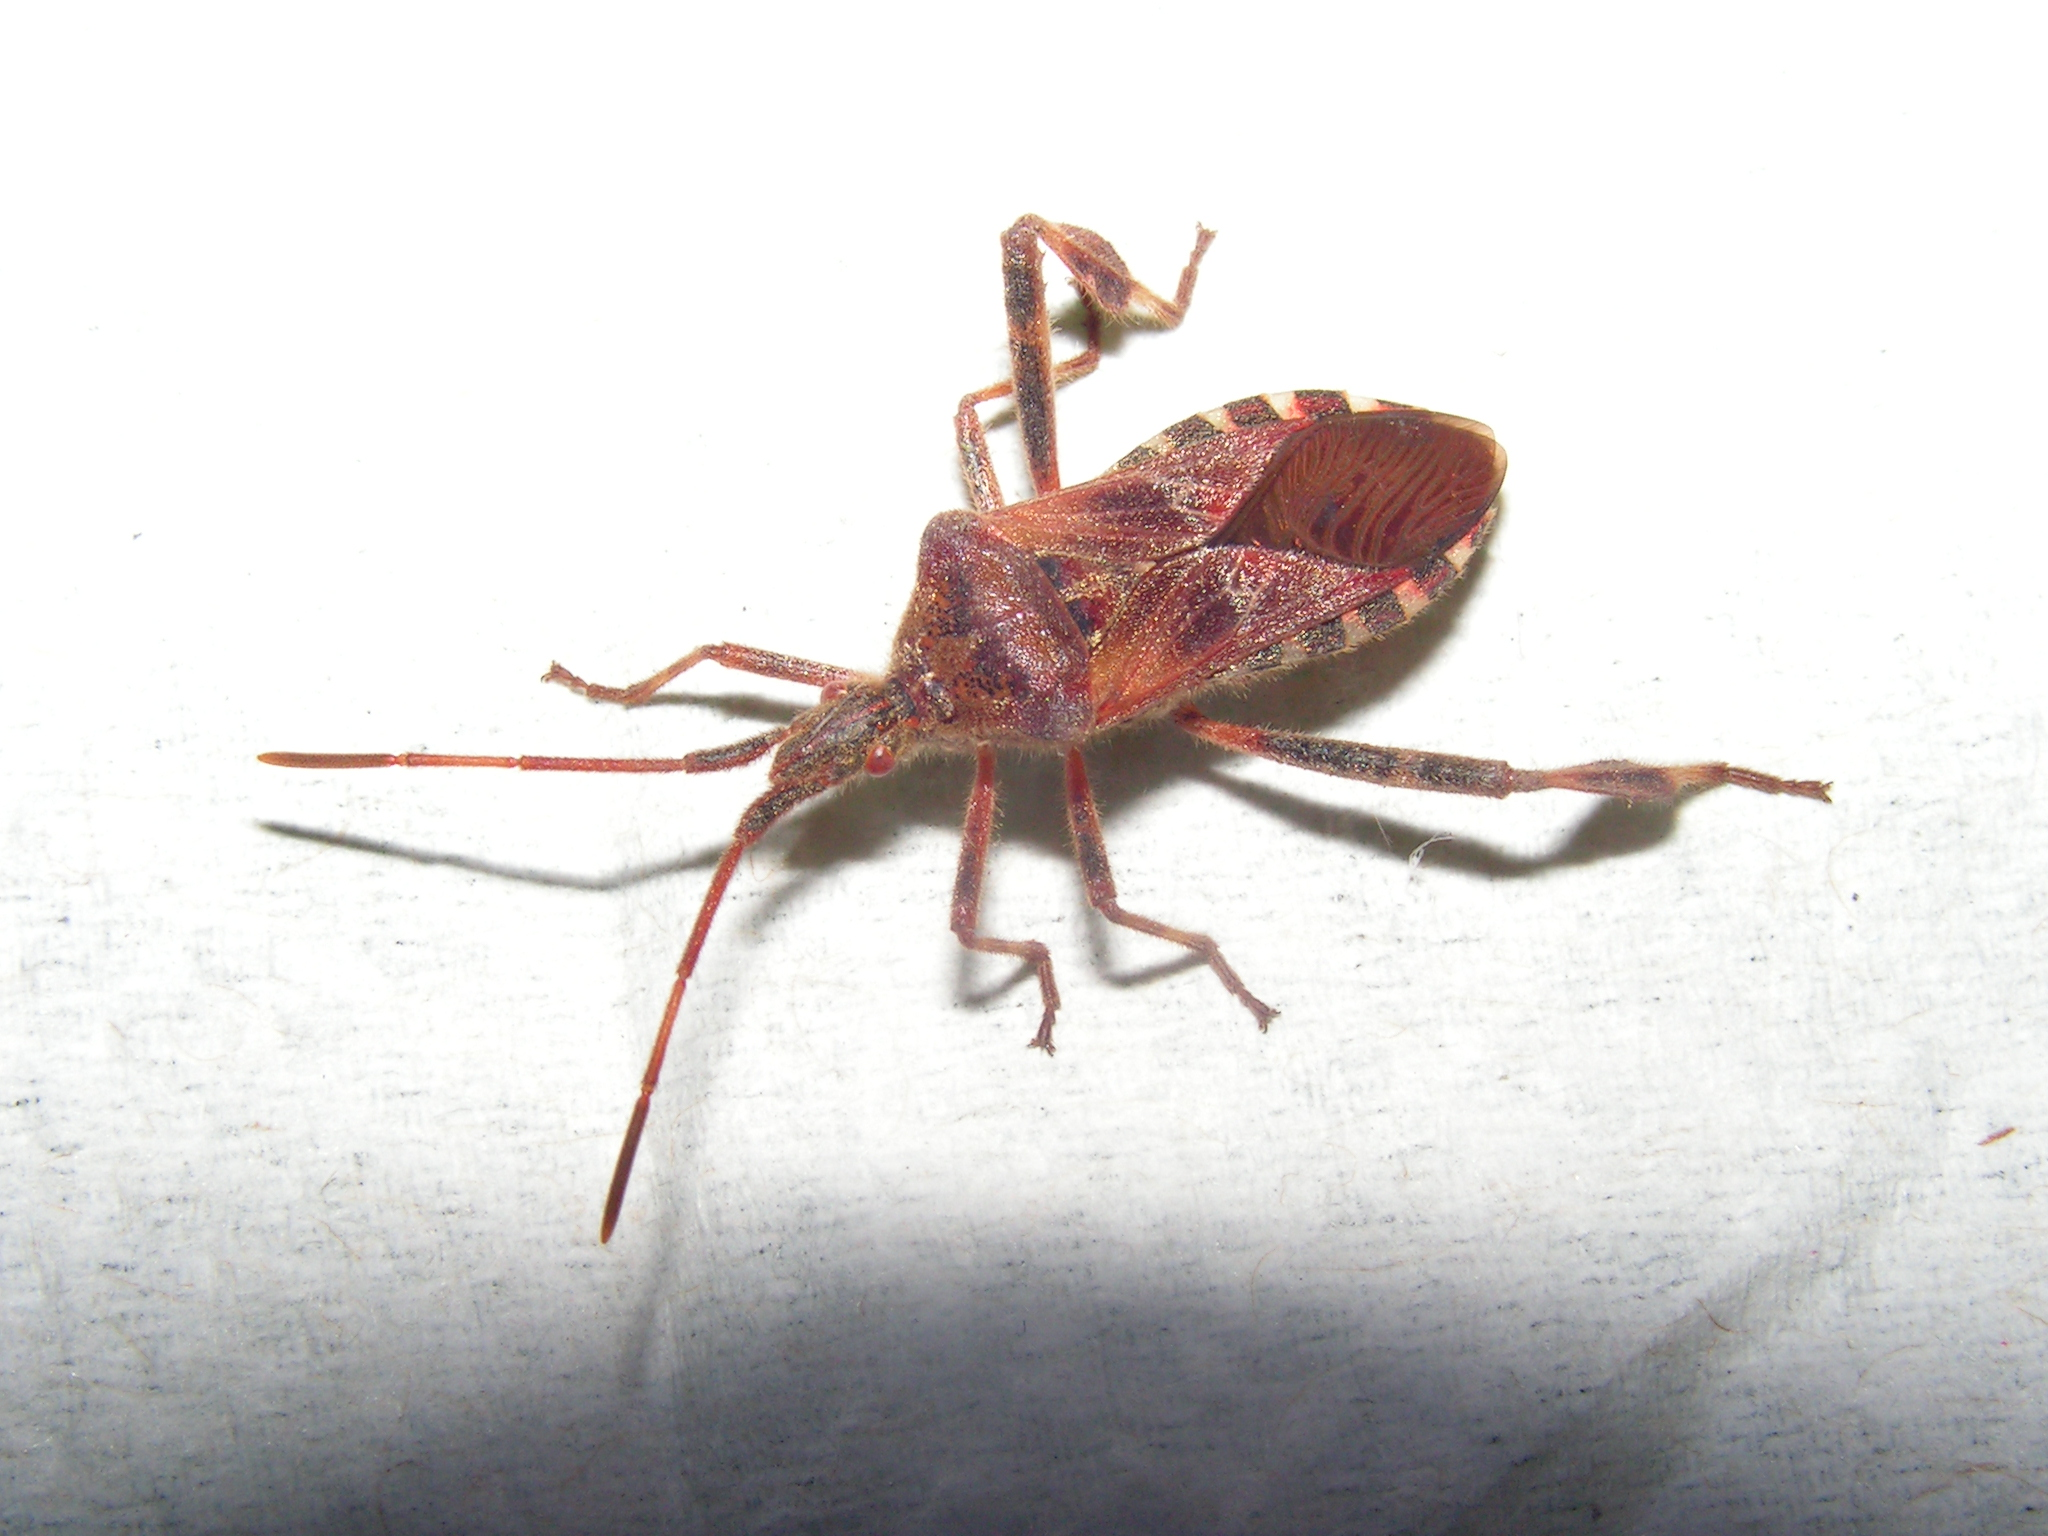 So What bug is this? | BladeForums.com